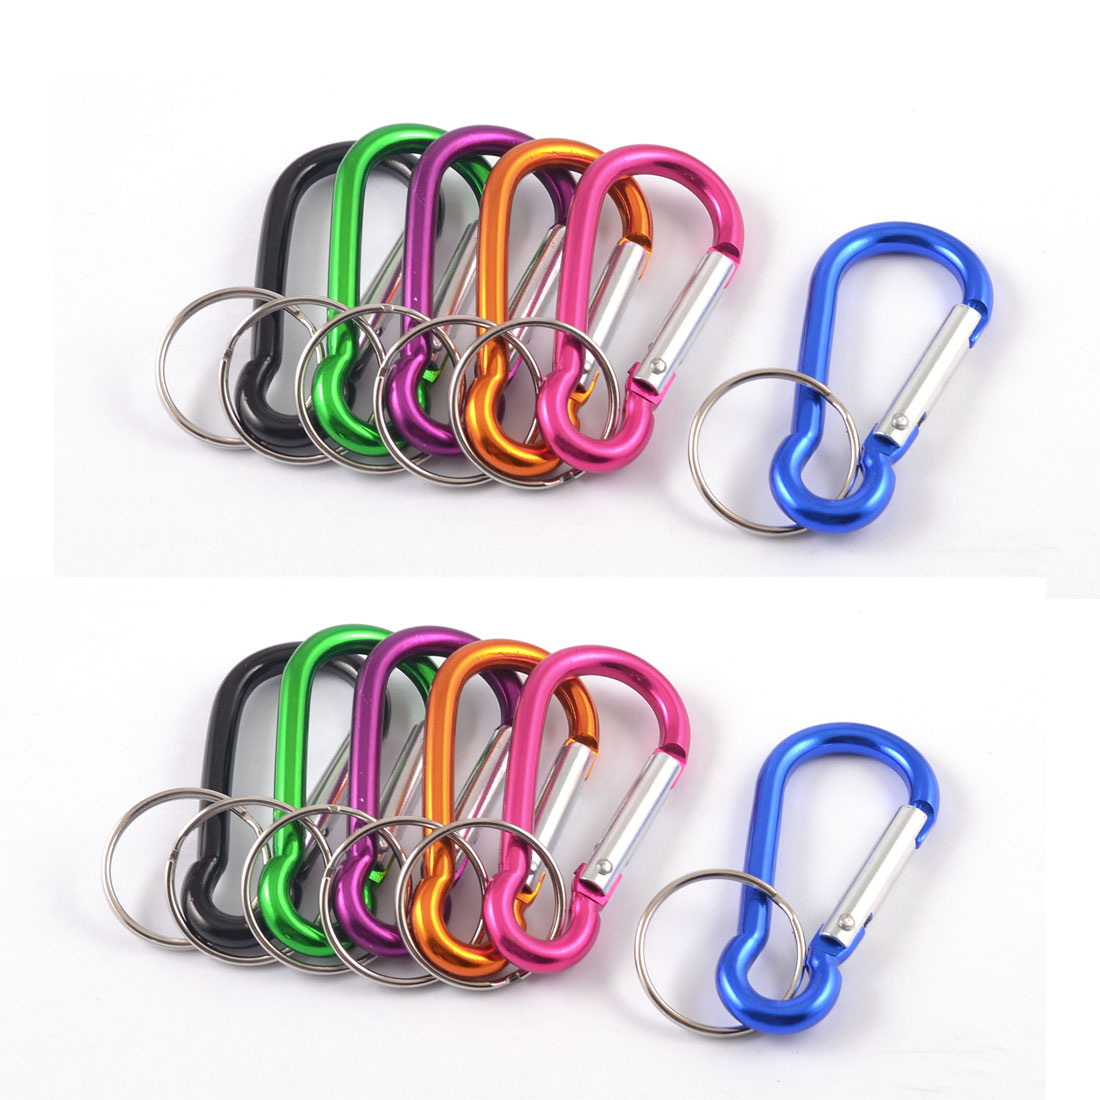 Travel Assorted Color 5mm Dia Key Ring Keychain Spring Hook Carabiners 12 Pcs